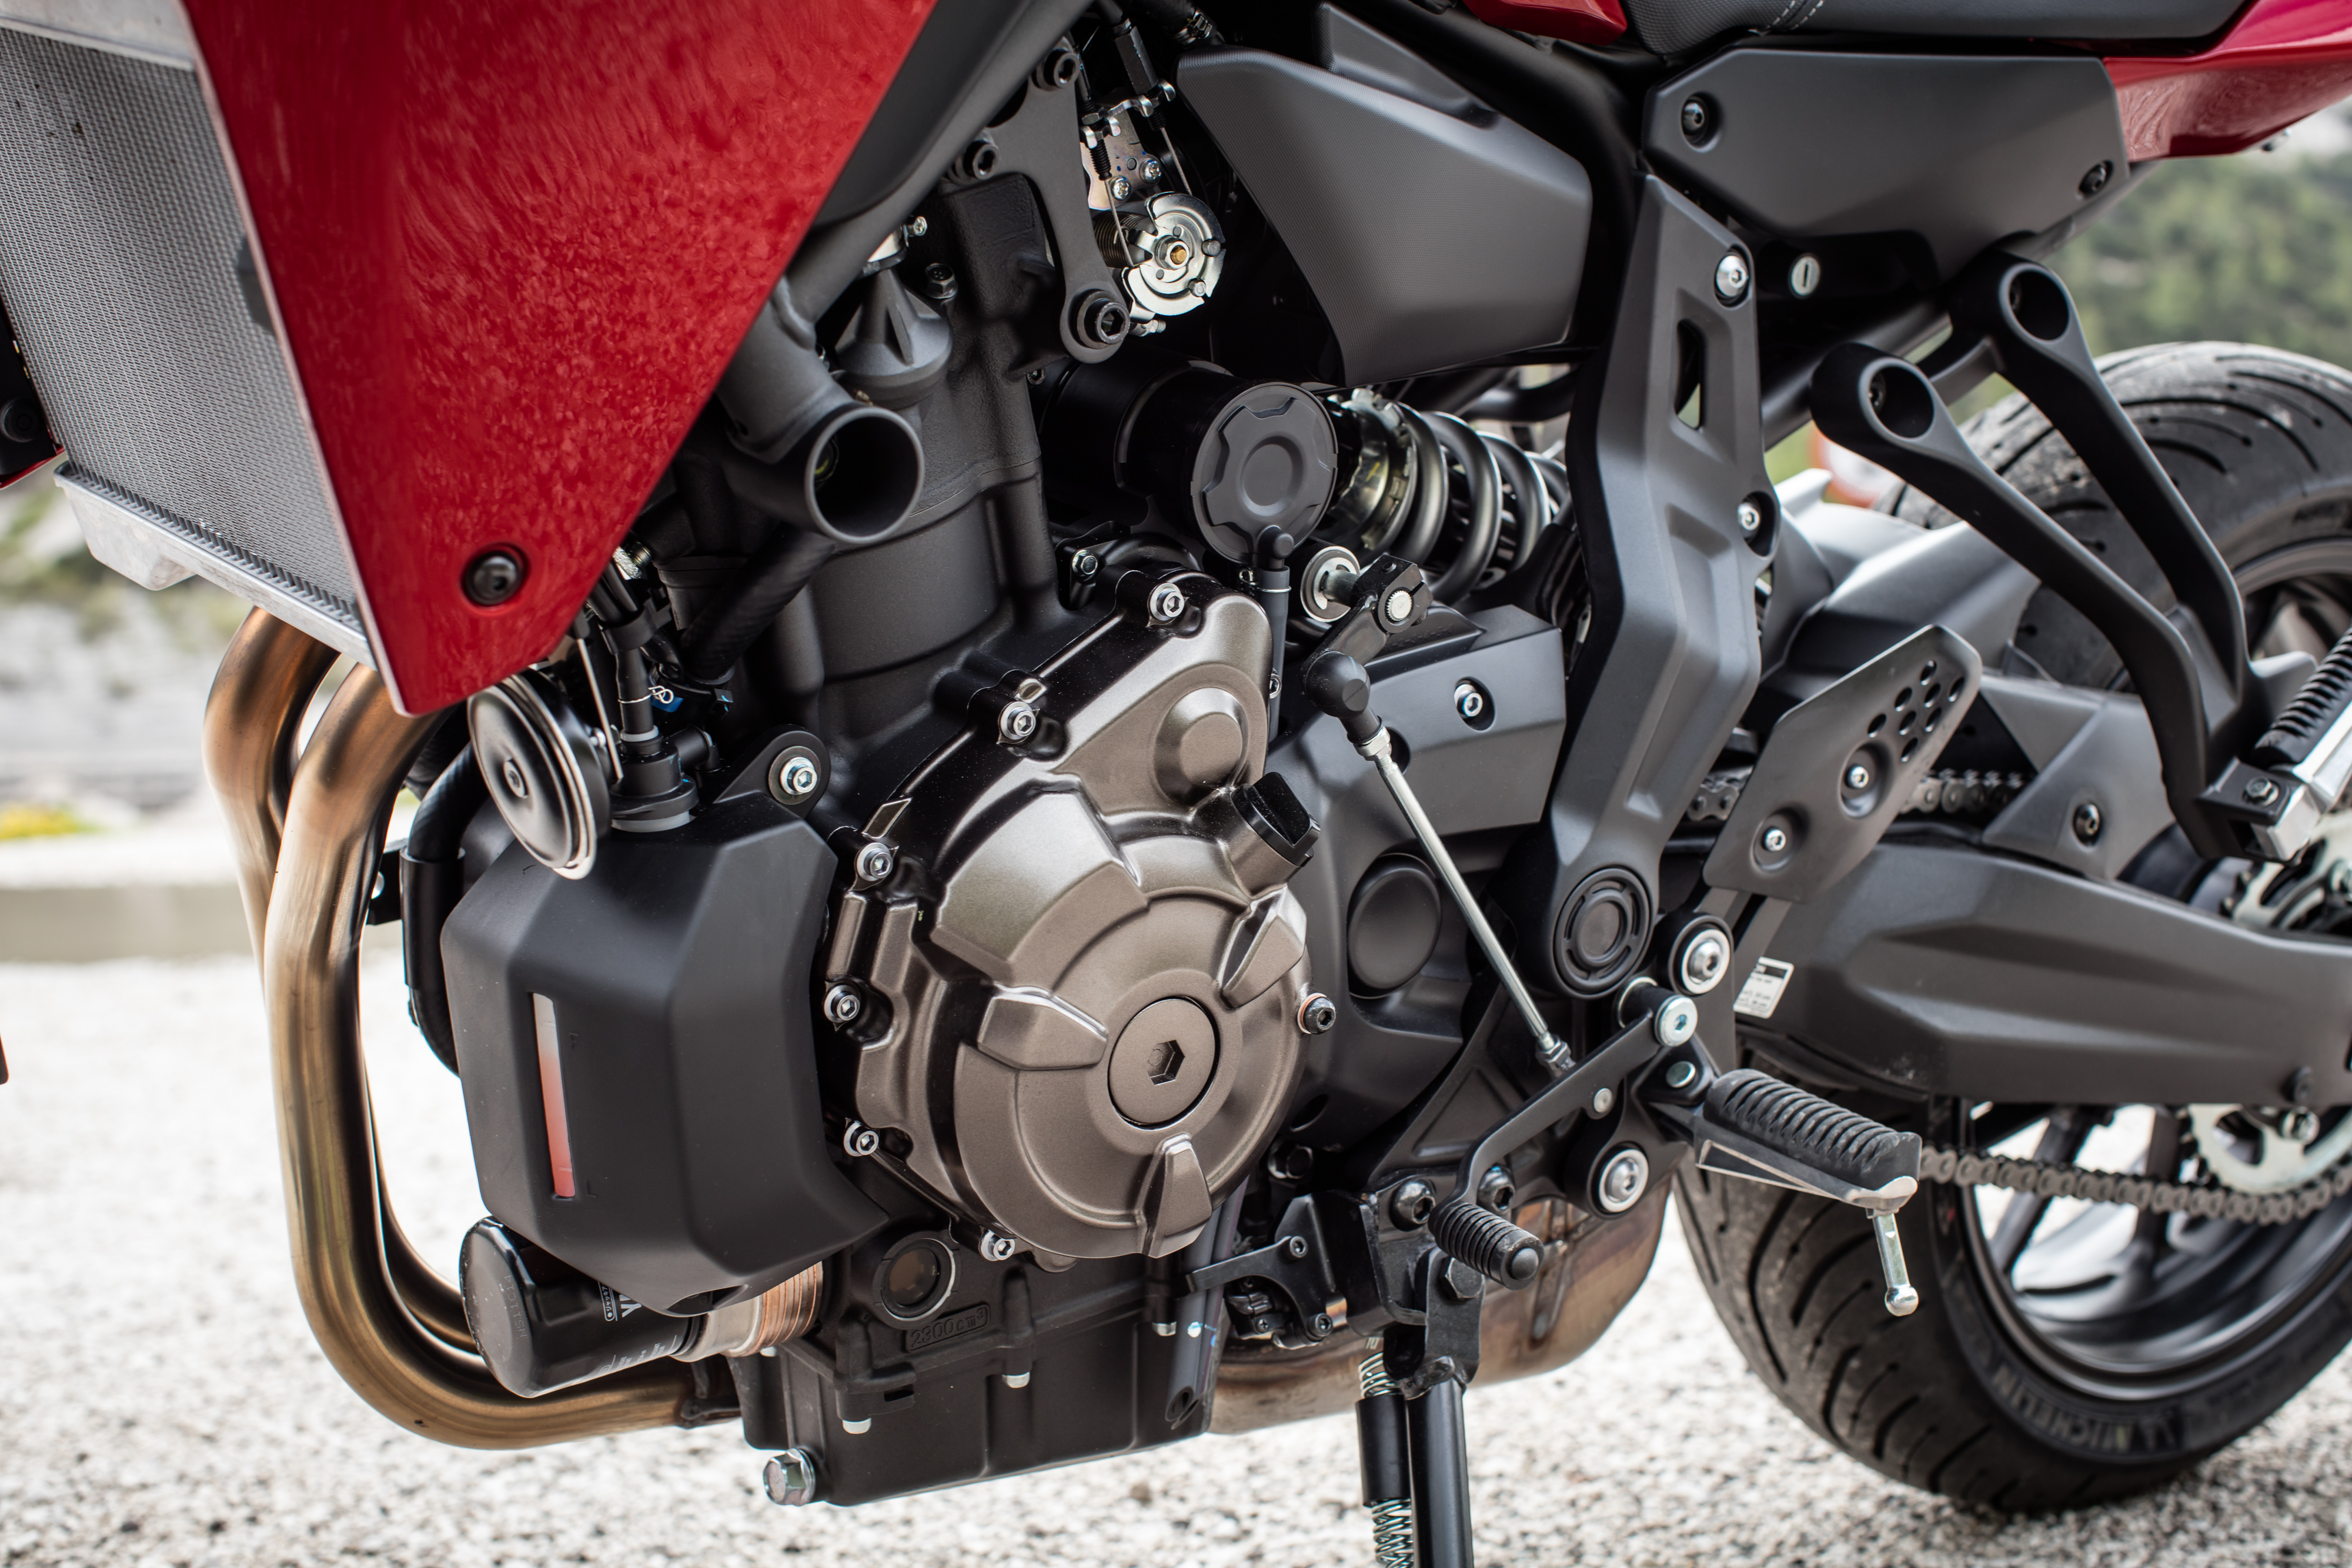 Yamaha Tracer 700 first ride review | Visordown